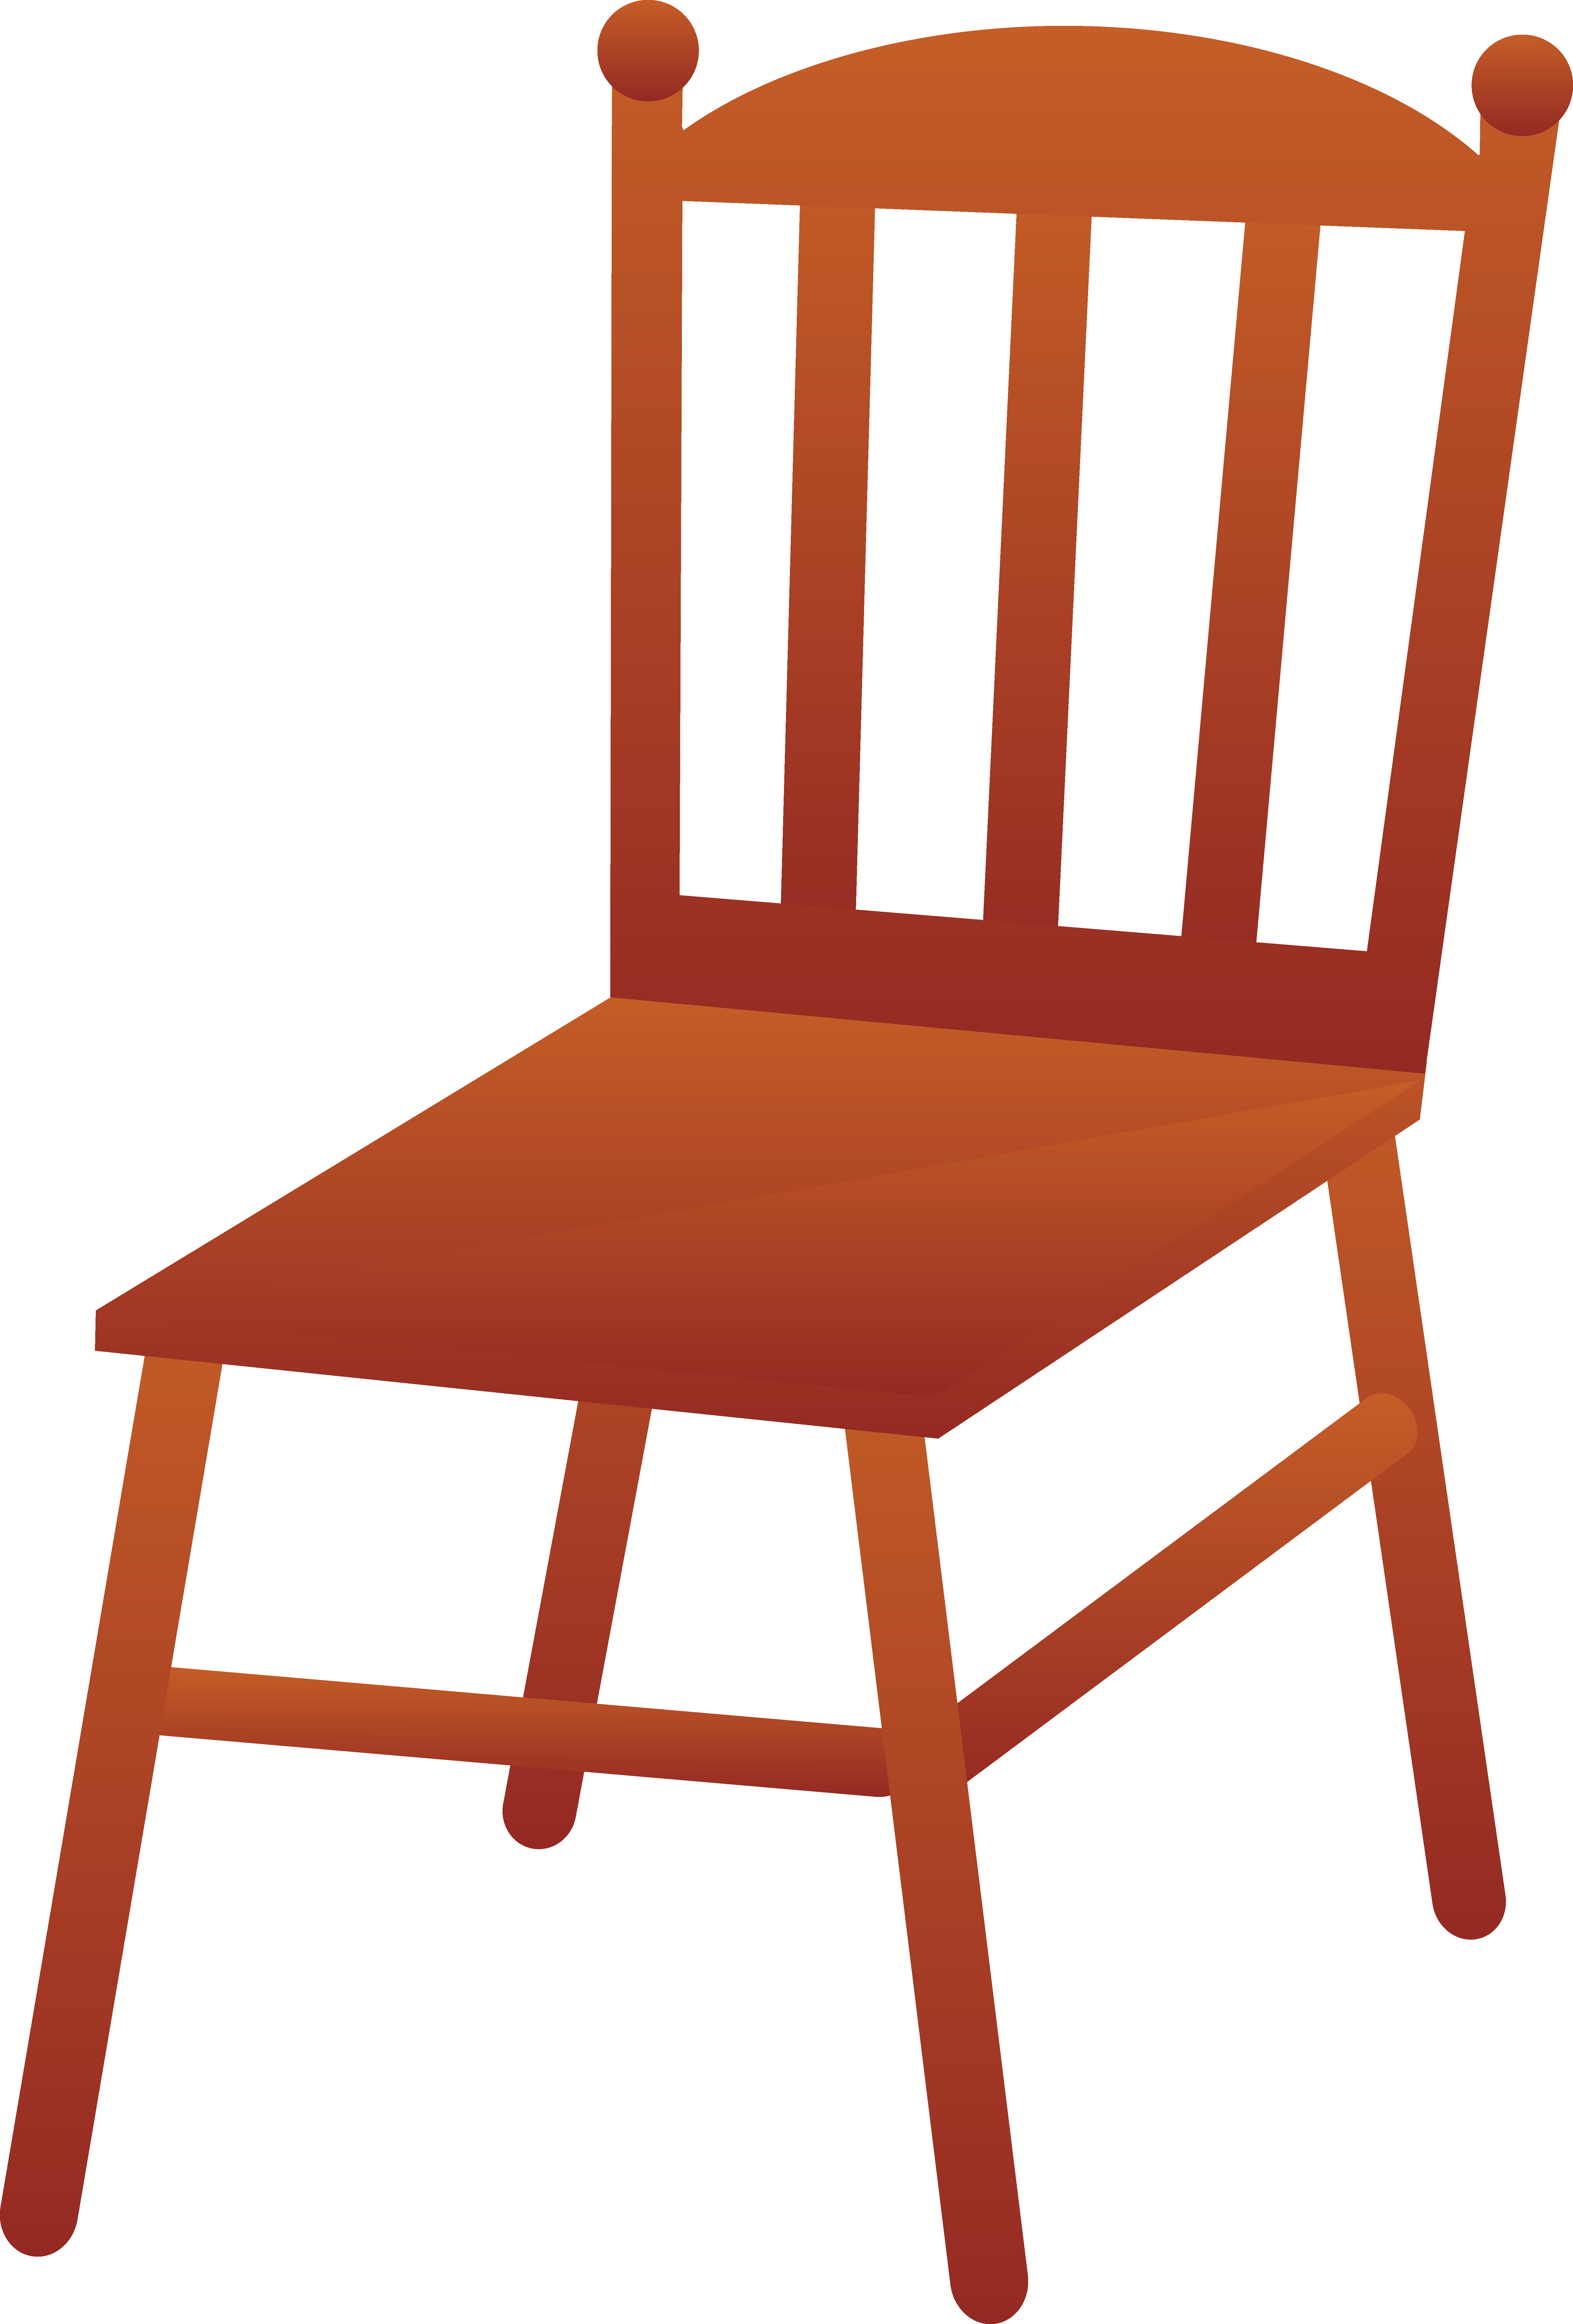 banner royalty free download Chair clipart black and white. Over the